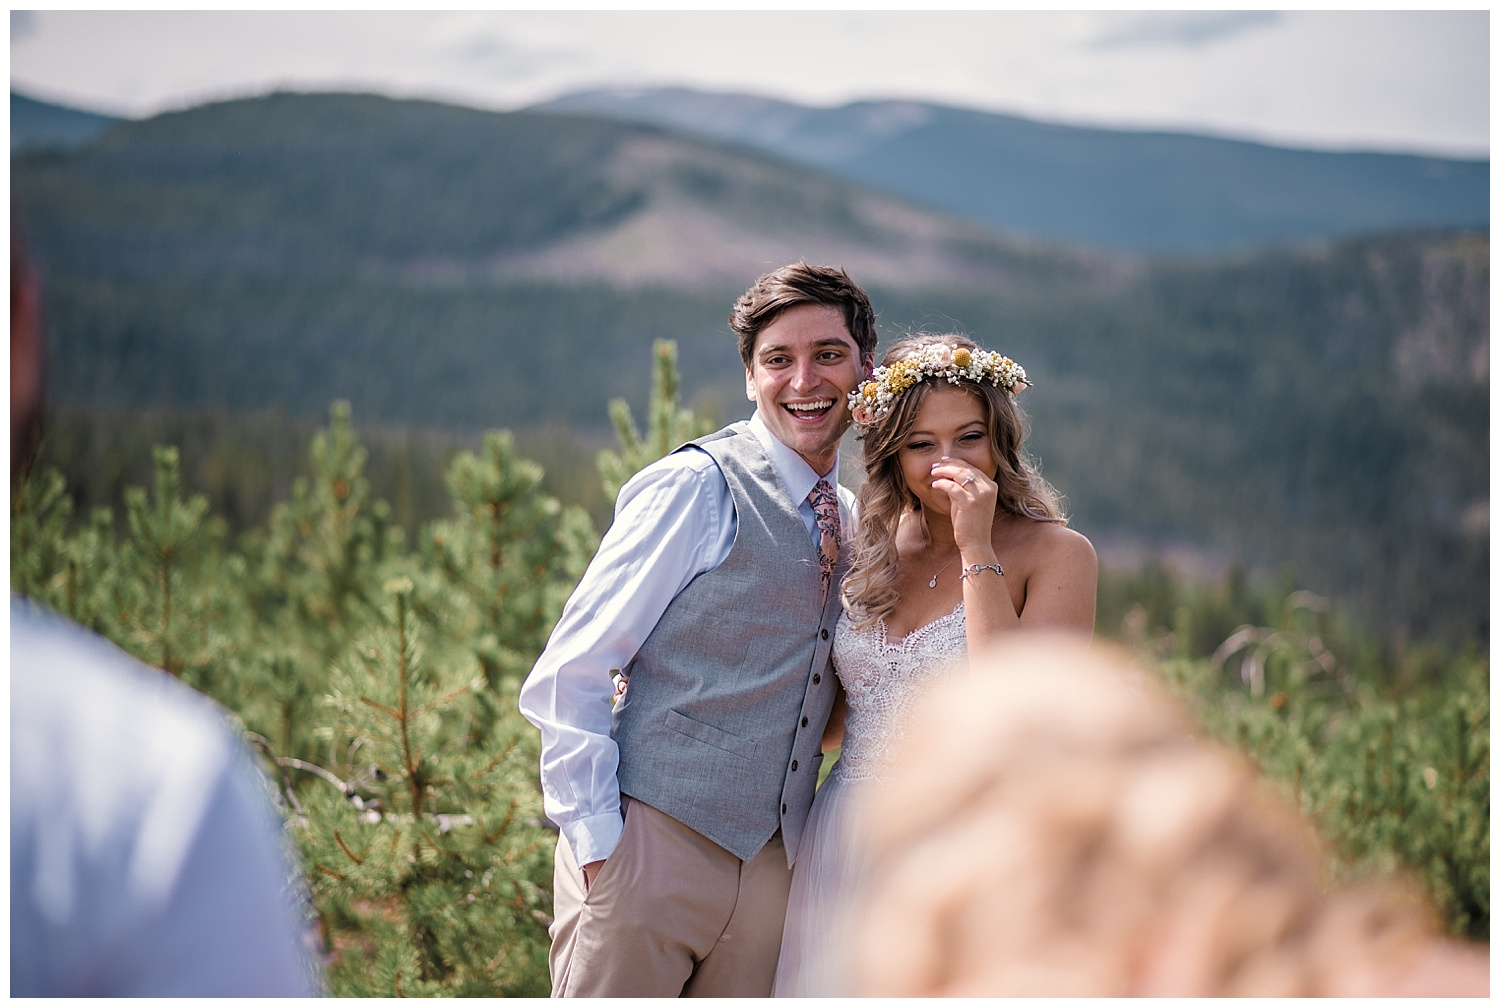 Bride and groom portraits at B Lazy 2 Ranch, Ranch Wedding in Colorado, Colorado Wedding Photographer, Denver Wedding Photographer, Intimate Colorado Wedding Photographer, Rocky Mountain Wedding Photographer, Winter Park Wedding Photographer